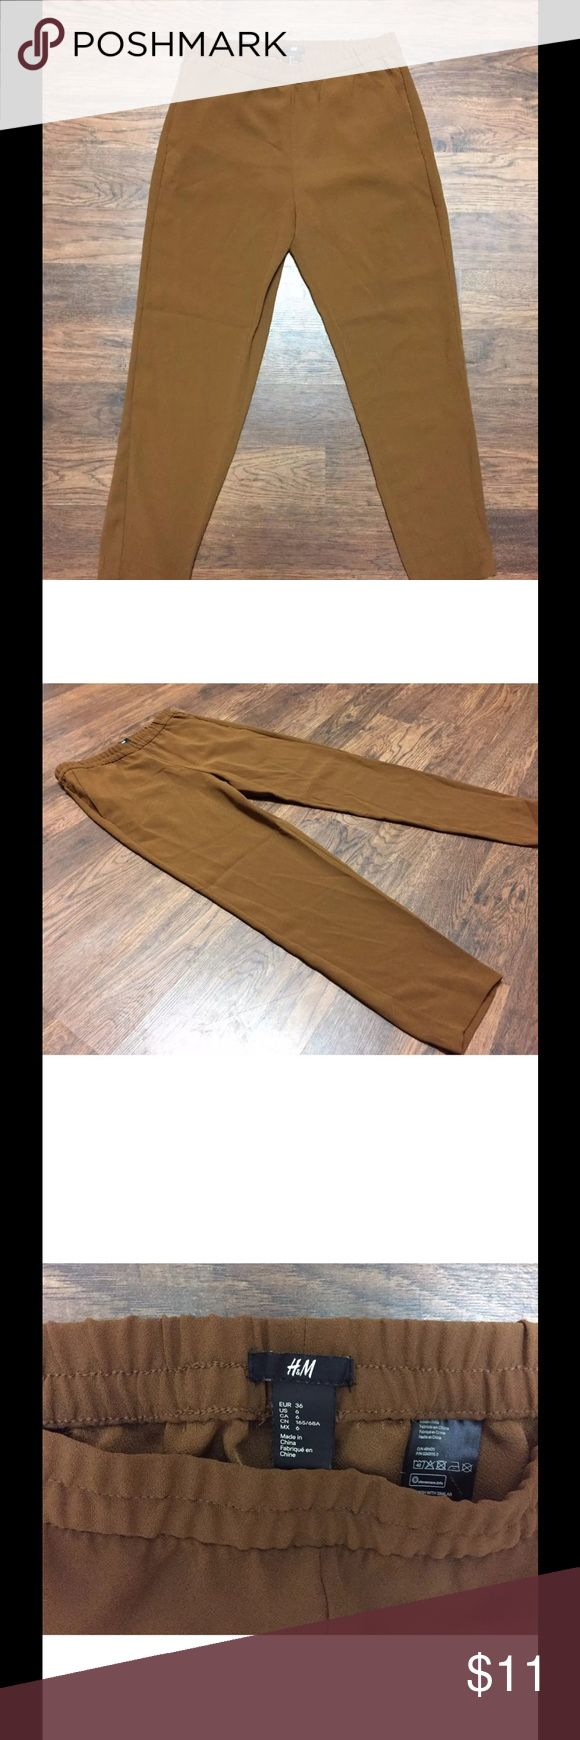 H&M trousers tan size 6 Tan colored slacks/trousers by H&M super cute  size 6 H&M Pants Ankle & Cropped